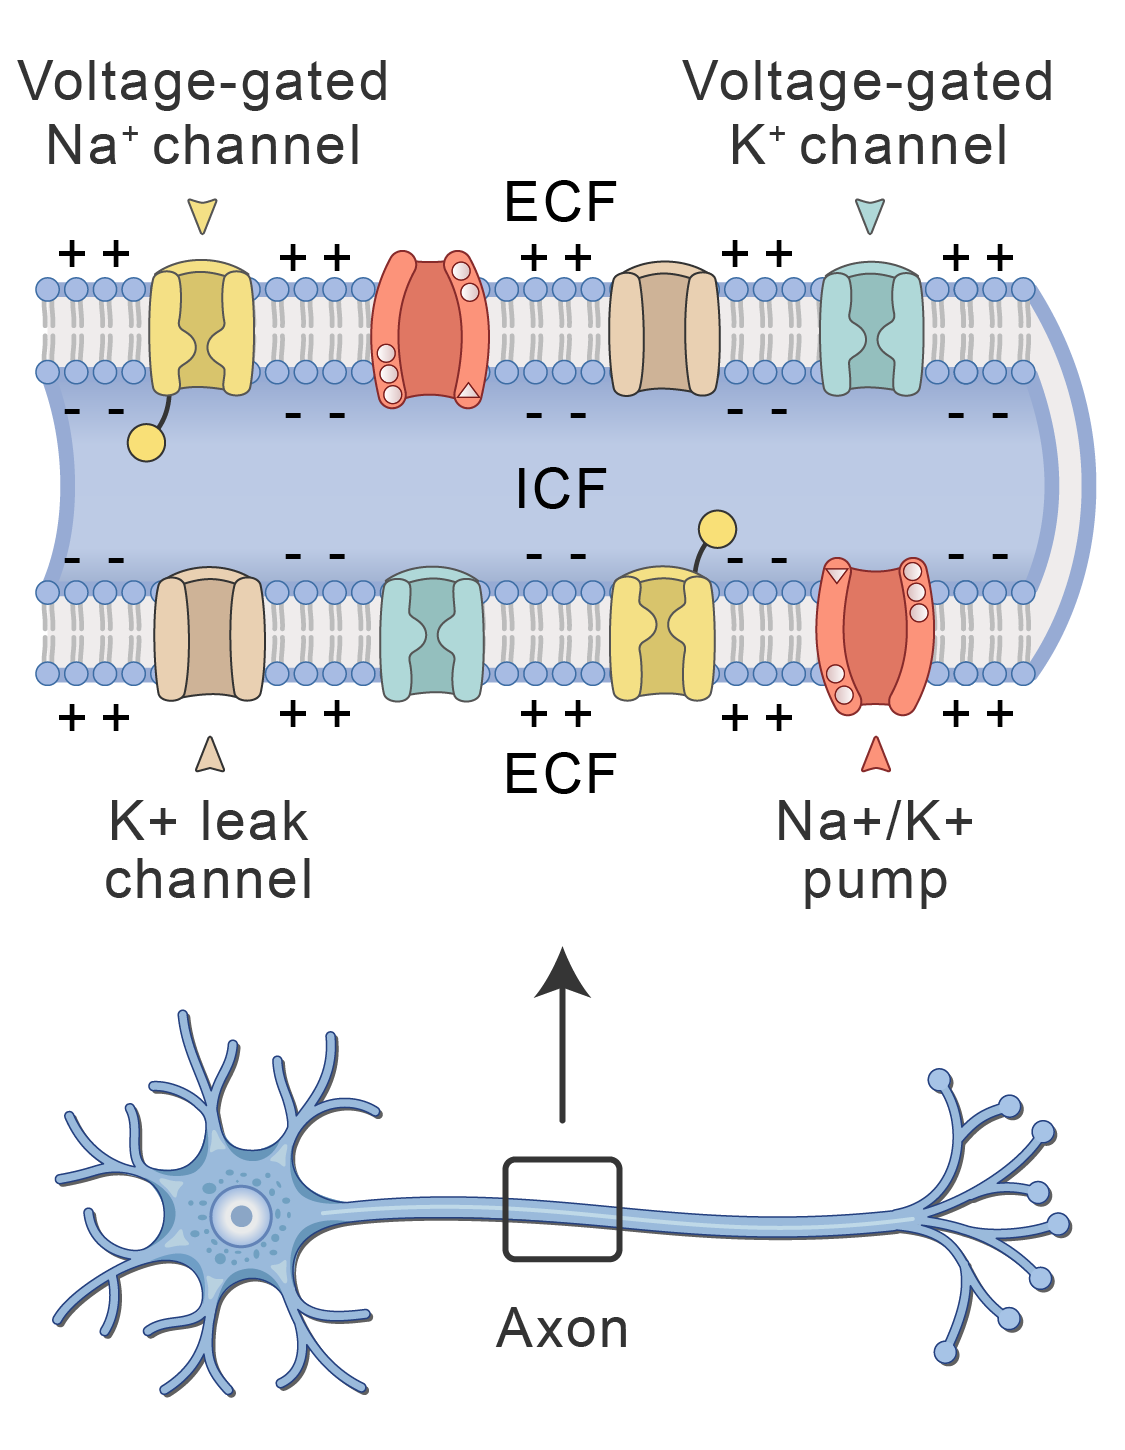 Axon membrane showing embedded protein channels and pumps